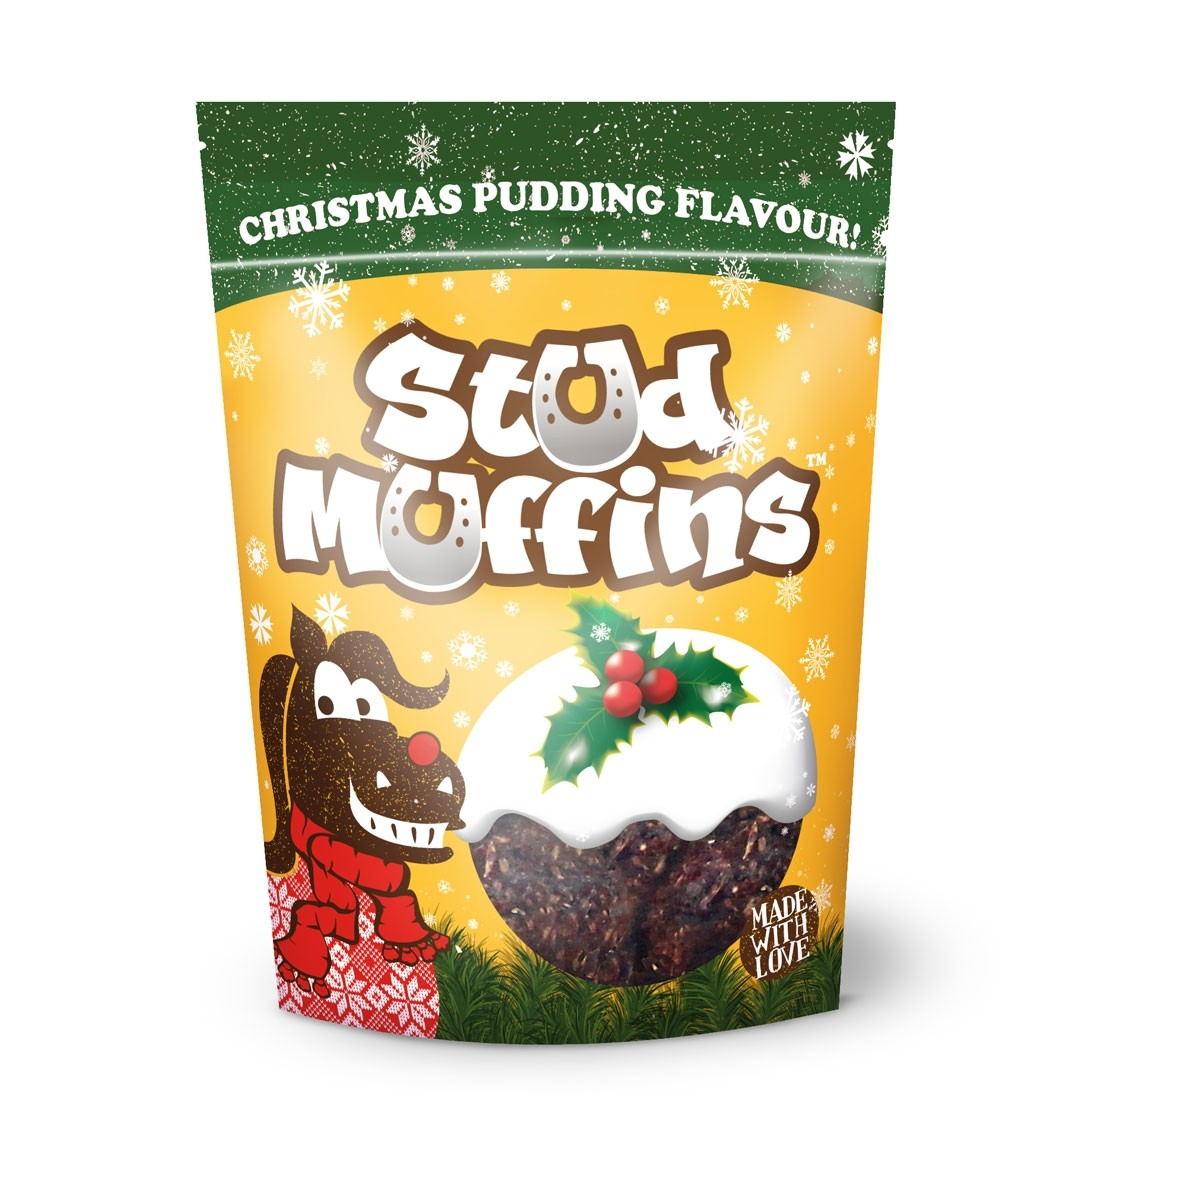 Likit Stud Muffins Christmas Pudding  - Thomas Irving's equestrian and accessories store  Likit Stud Muffins Christmas Pudding